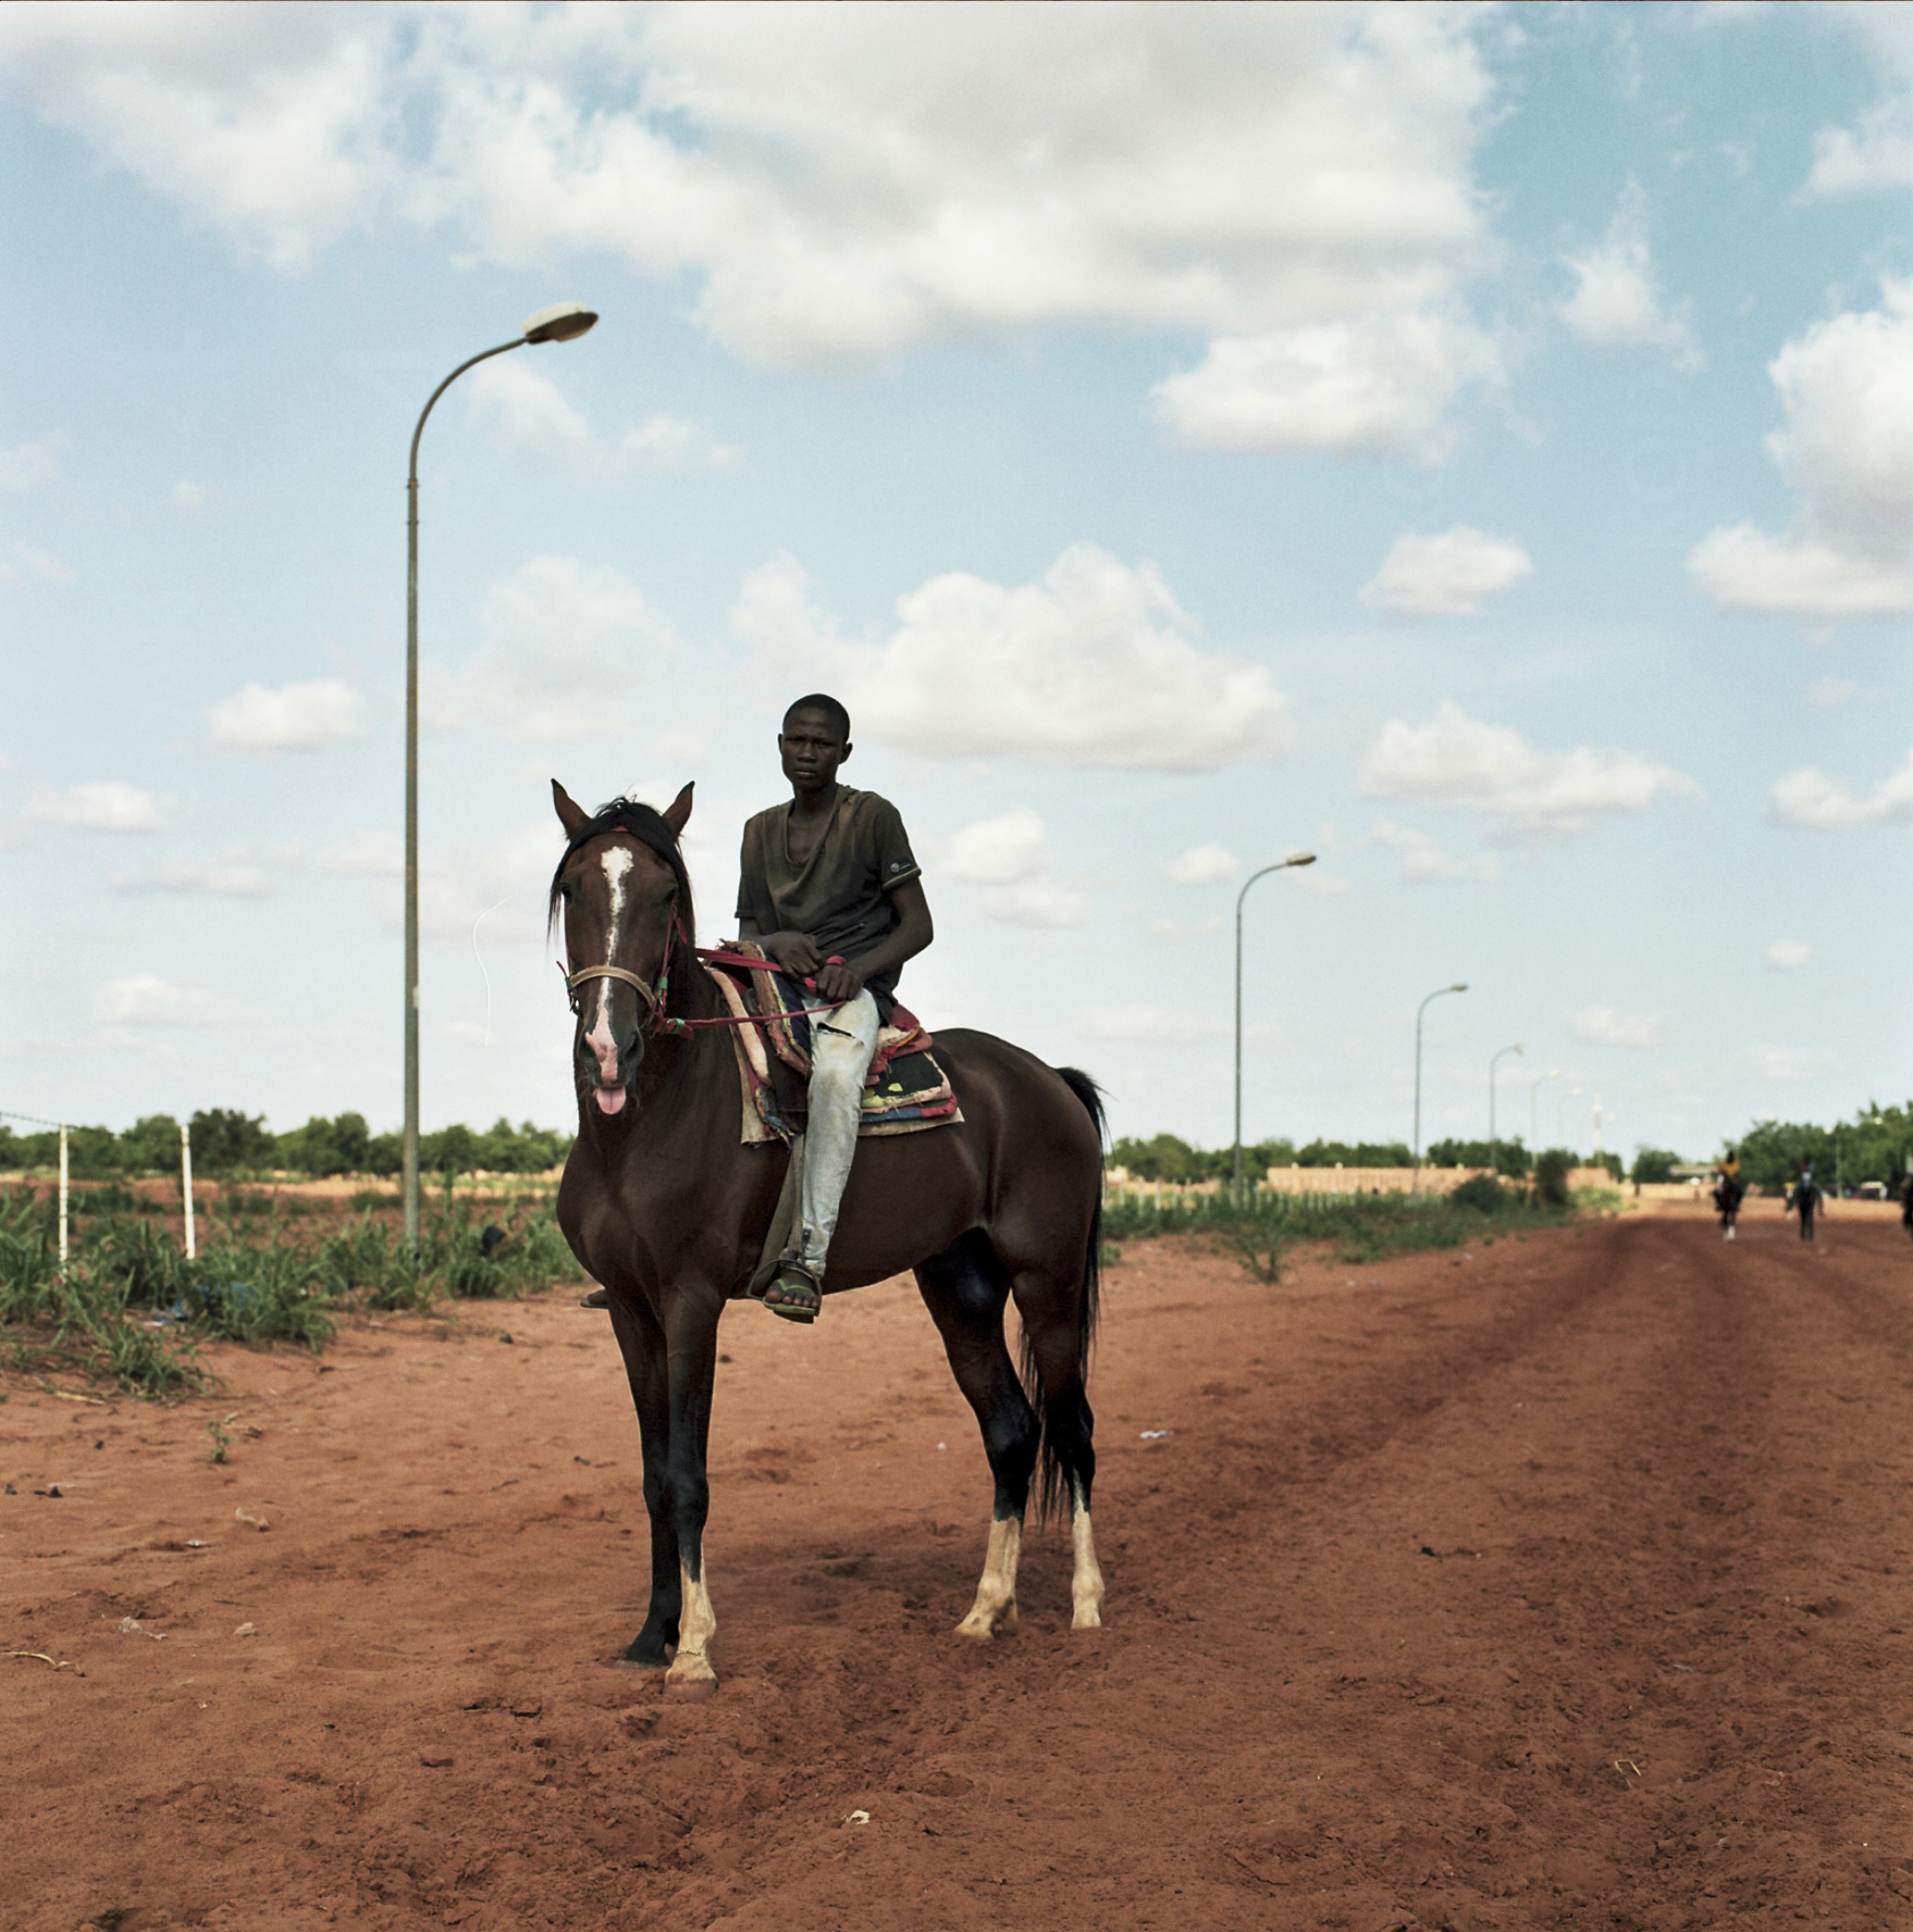 """Yussef, 14, has been riding and racing horses since he was eight. """"I want to ride my whole life,"""" he says from the saddle of his horse, """"I can fly with the horse."""""""